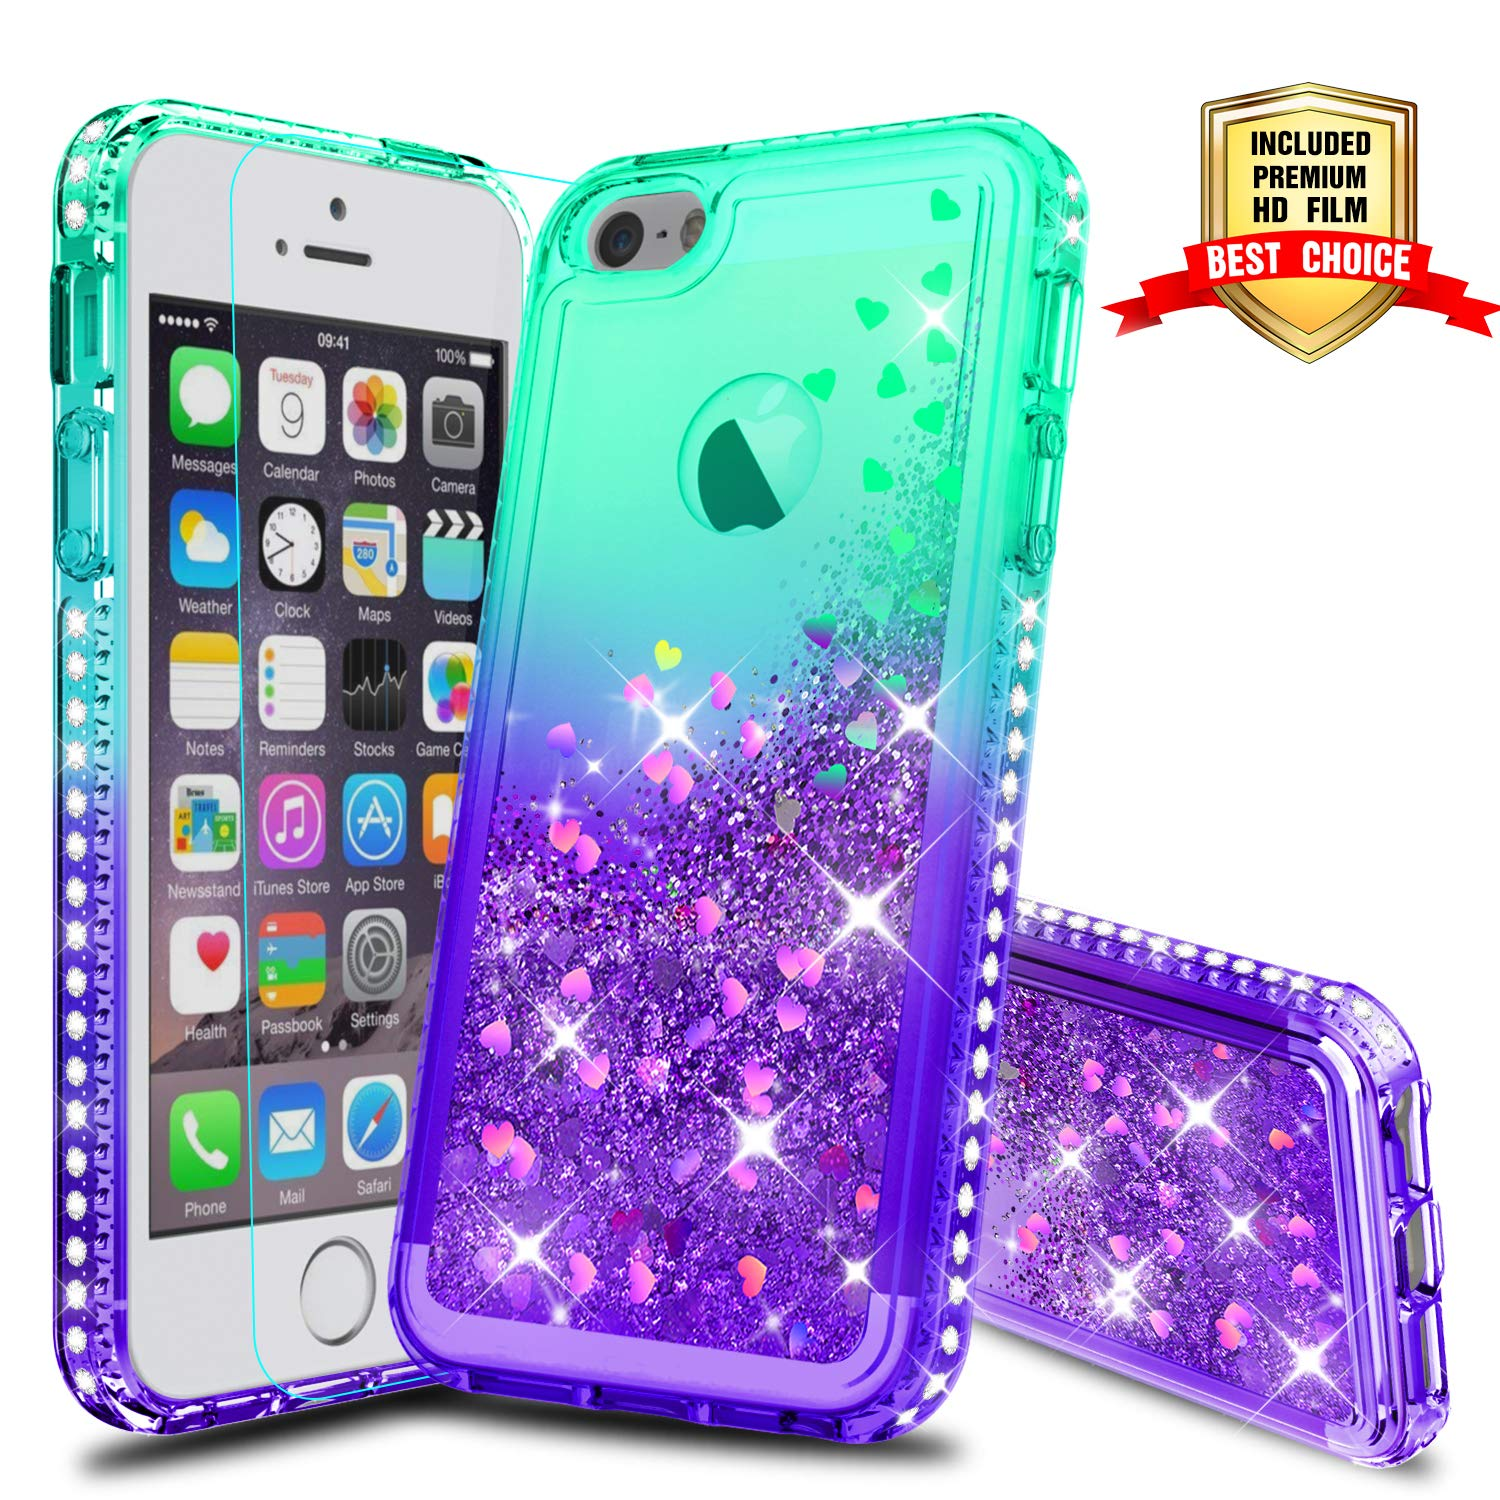 san francisco 658ea 62f9a iPhone 5S Case, iPhone SE Girly Cases with HD Screen Protector, Atump Fun  Glitter Liquid Sparkle Diamond Cute TPU Silicone Protective Phone Cover  Case ...